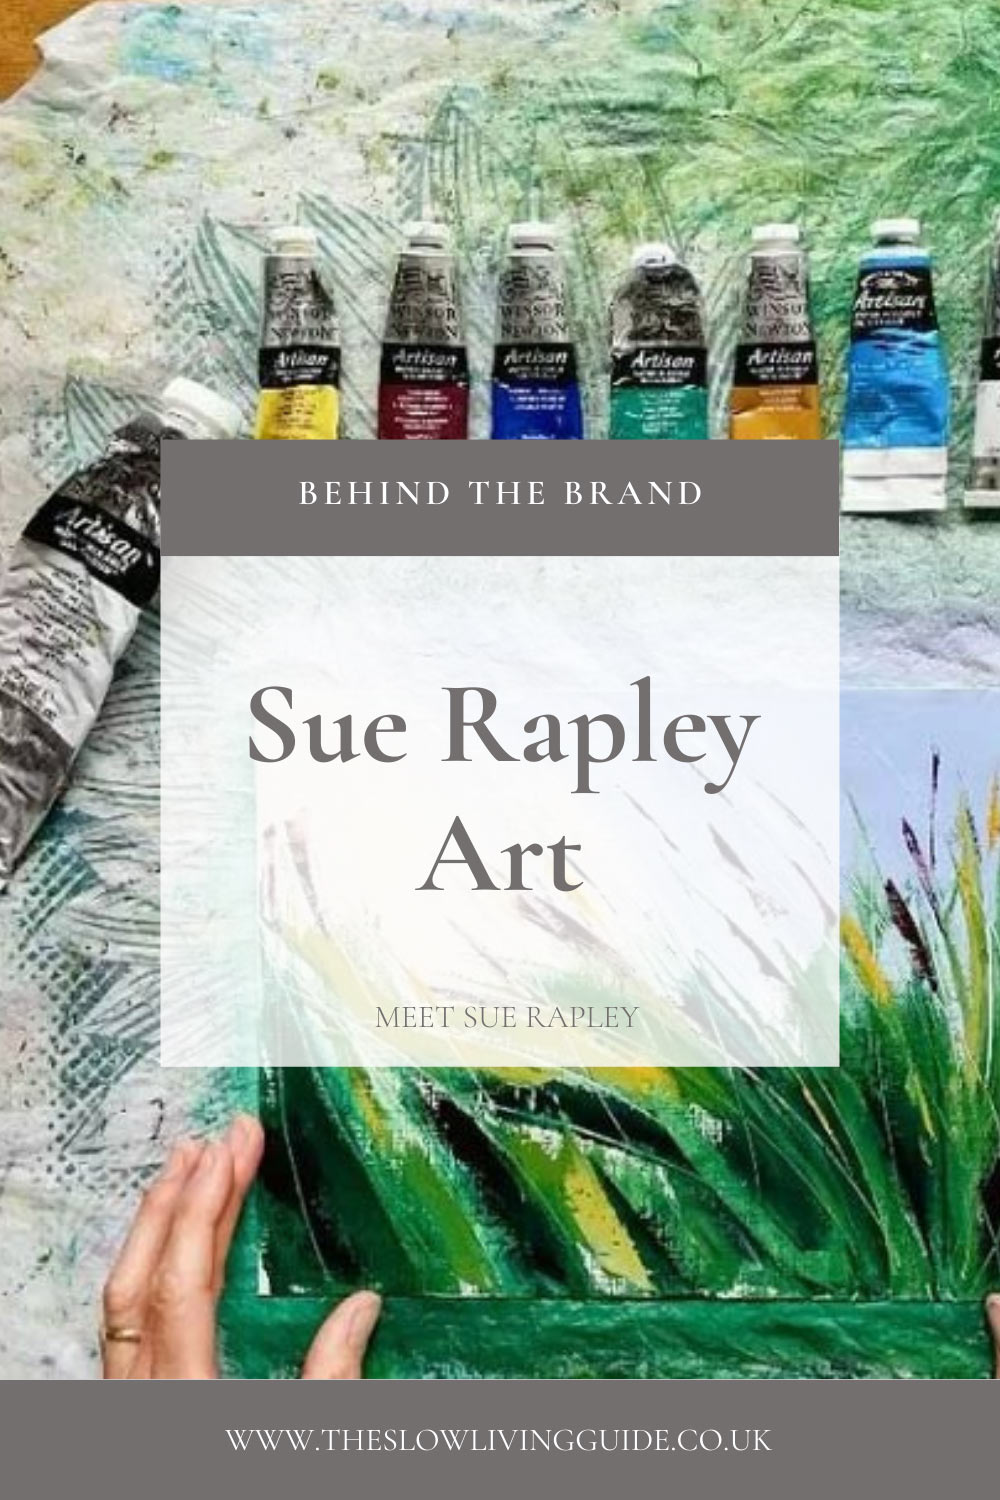 pin image for interview with Sue Rapley showing a flatly with a piece of art and paint tubes